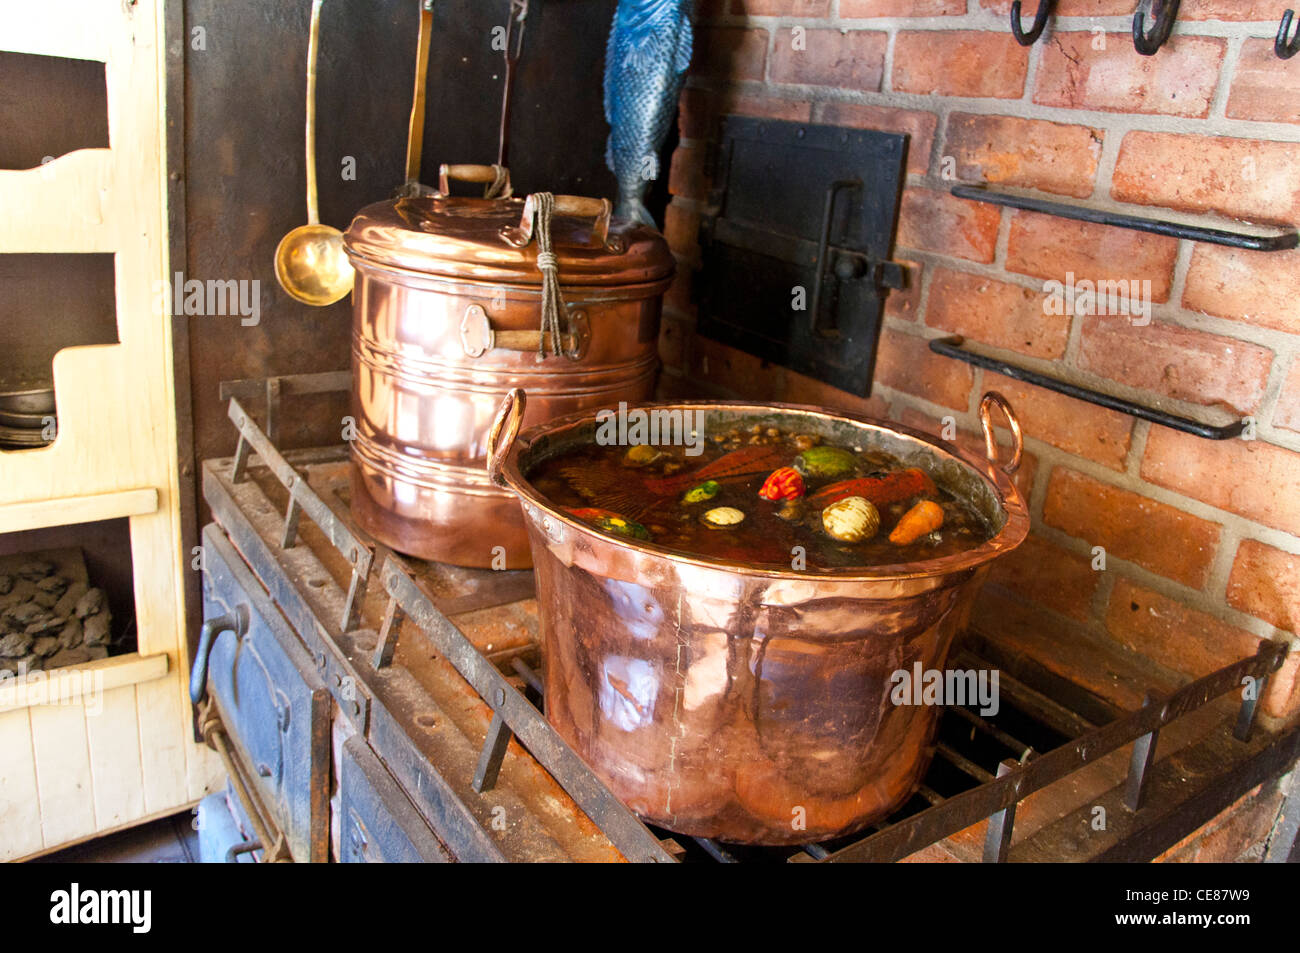 Copper Pots High Resolution Stock Photography And Images Alamy